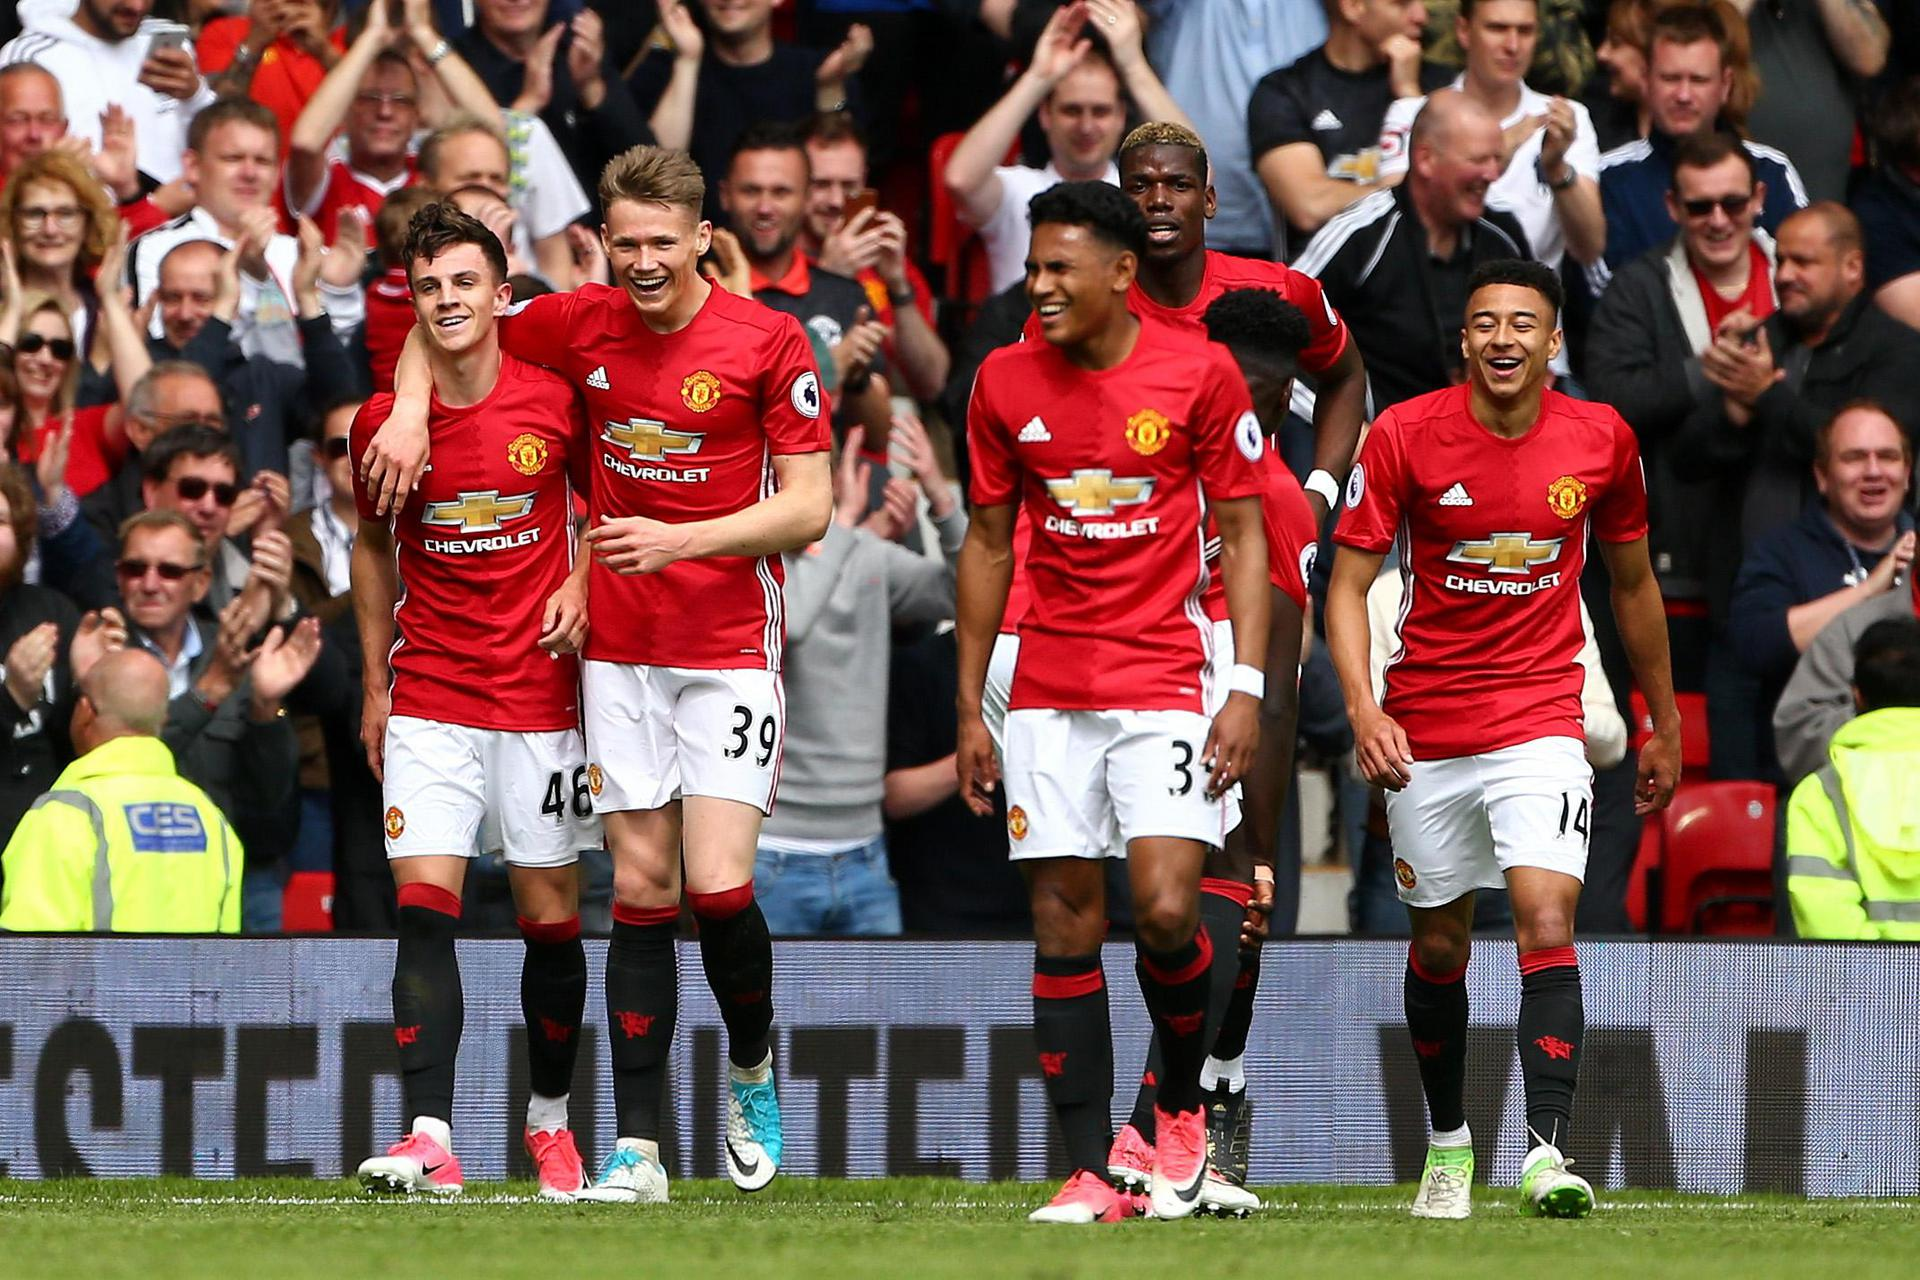 United celebrate a goal against Crystal Palace in 2017.